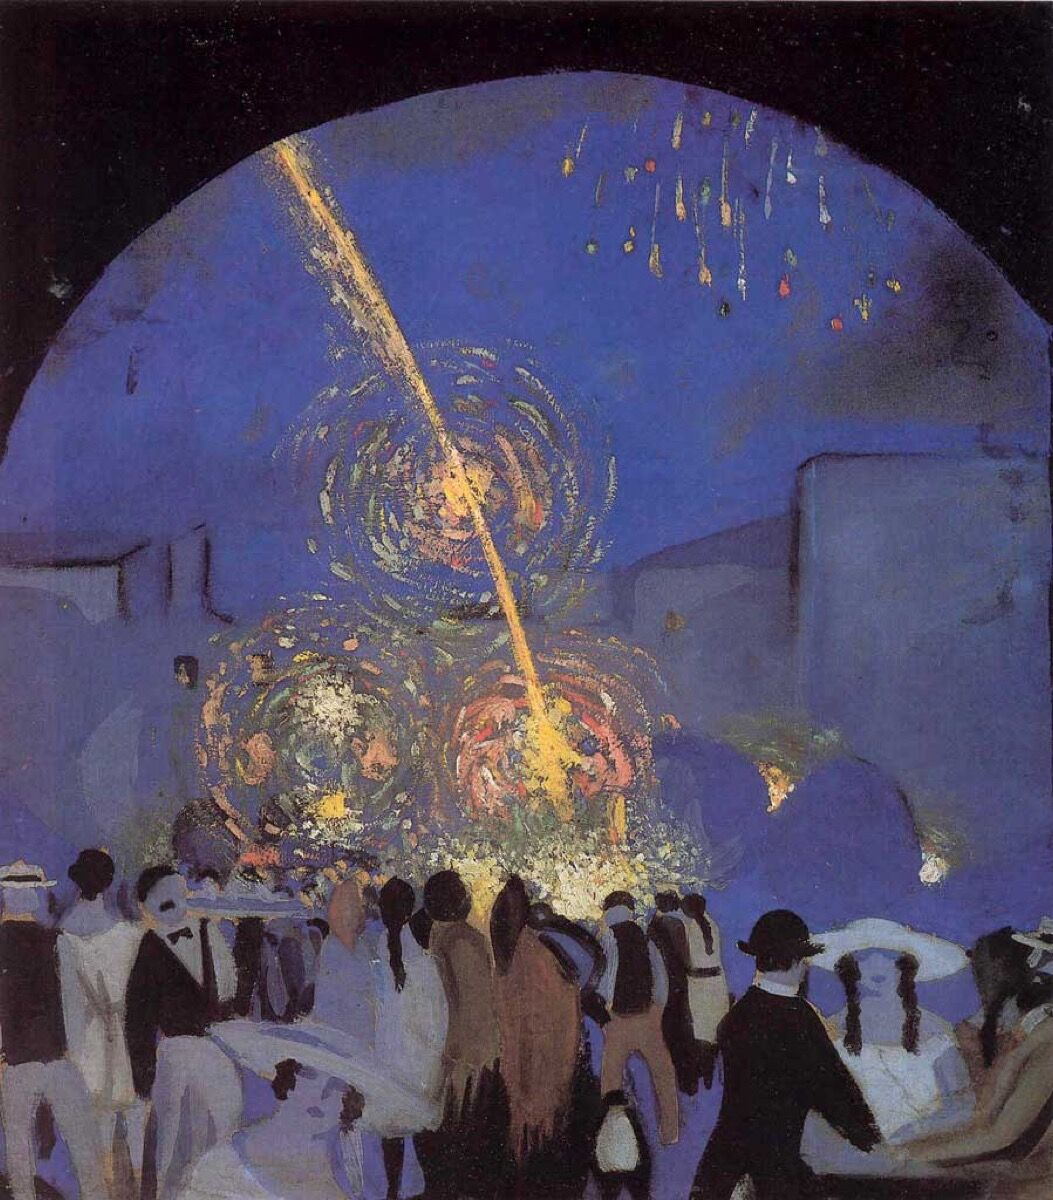 Salvador Dalí, Fiesta in Figueres, 1914-1916. Worldwide rights ©Salvador Dalí. Fundació Gala-Salvador Dalí (Artists Rights Society), 2017 / In the USA ©Salvador Dalí Museum, Inc. St. Petersburg, FL 2017. Photo courtesy of The Dalí Museum.